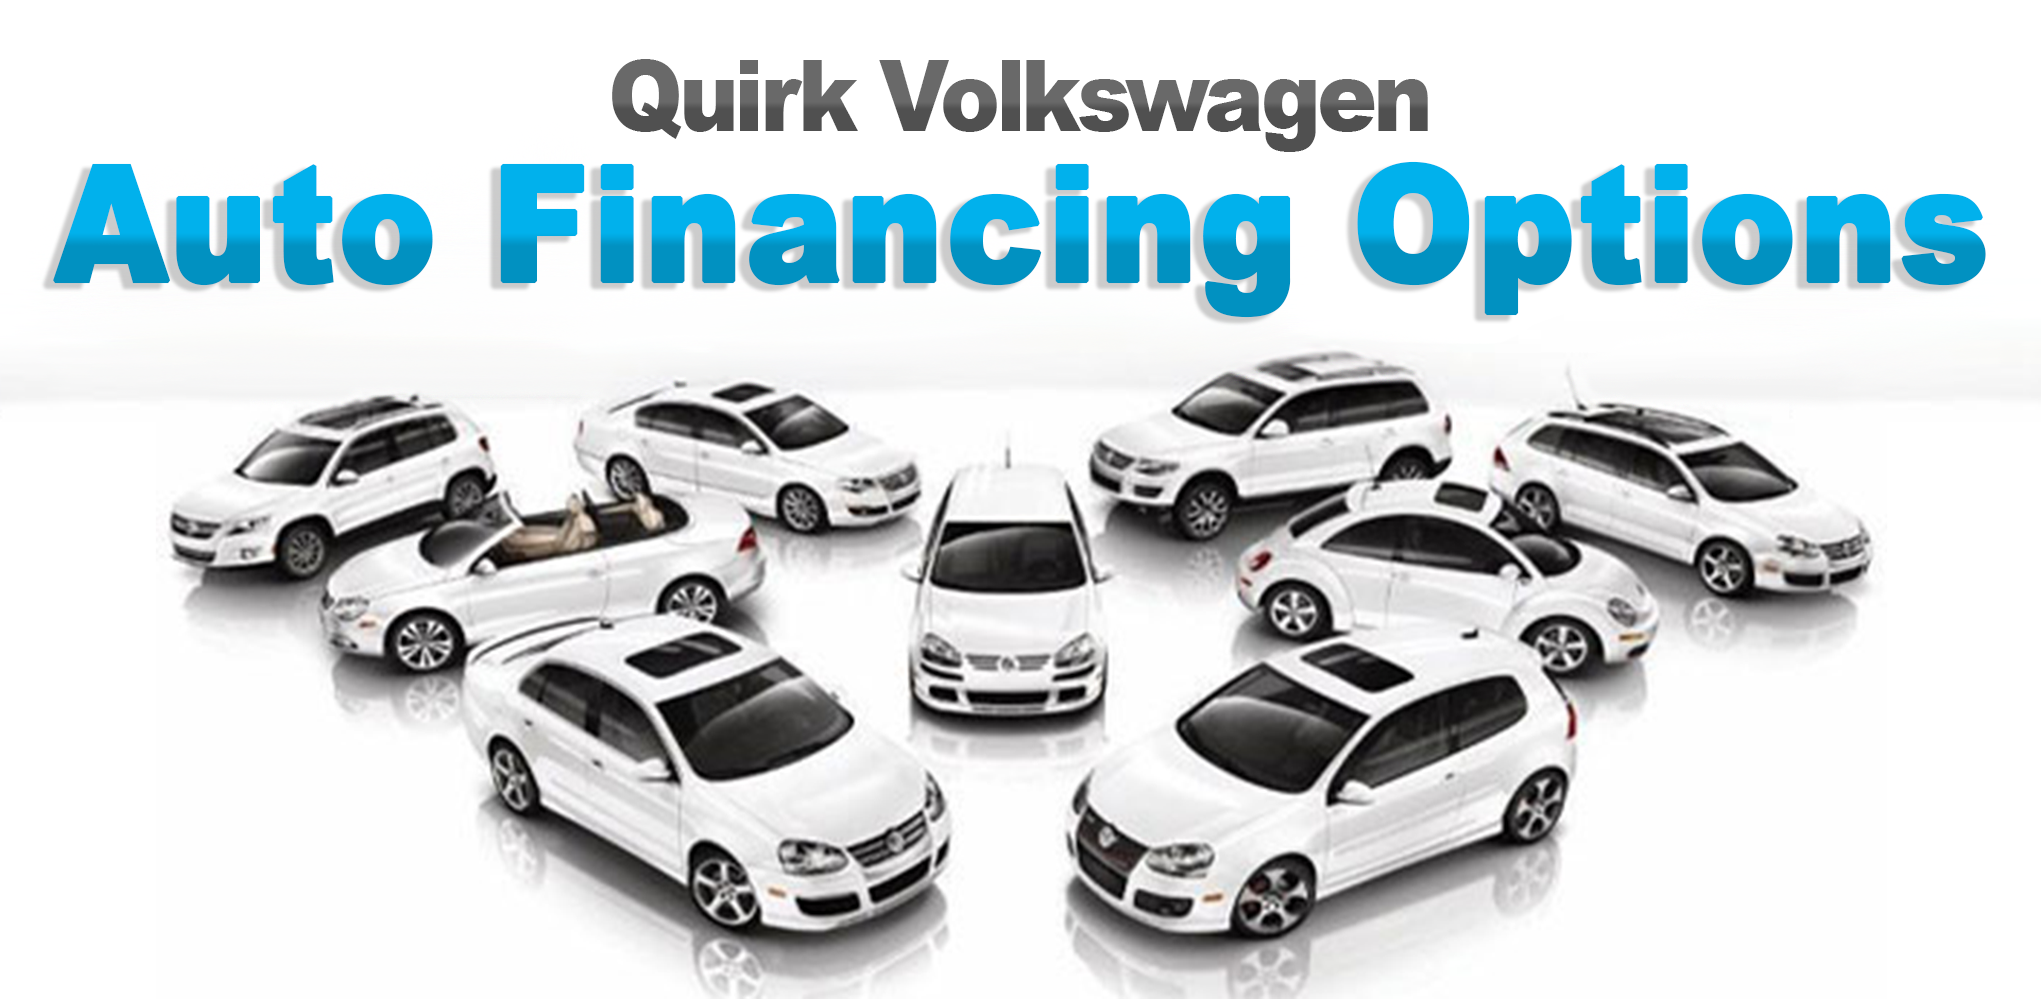 quirk vwma financing options